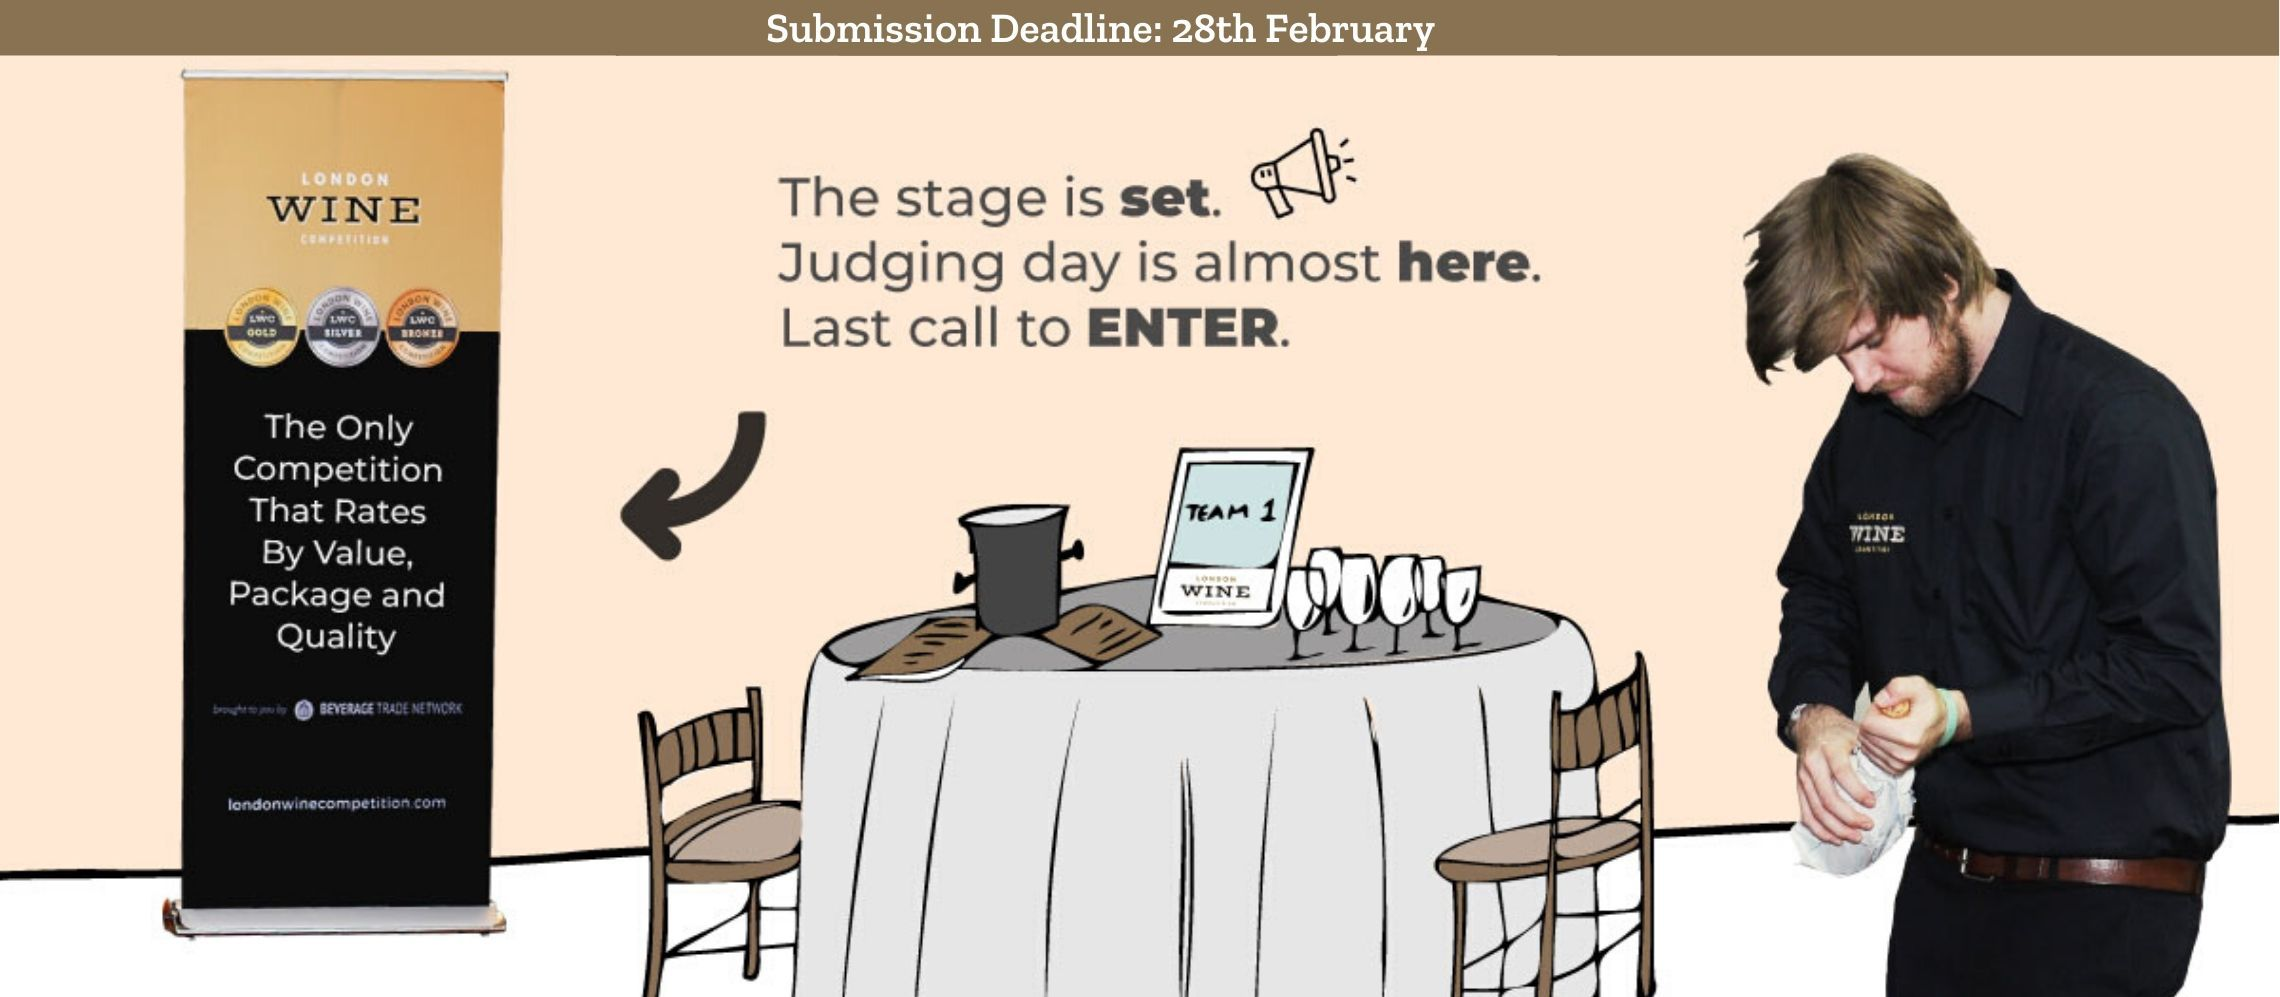 Photo for: London Wine Competition Submissions End On 28th February